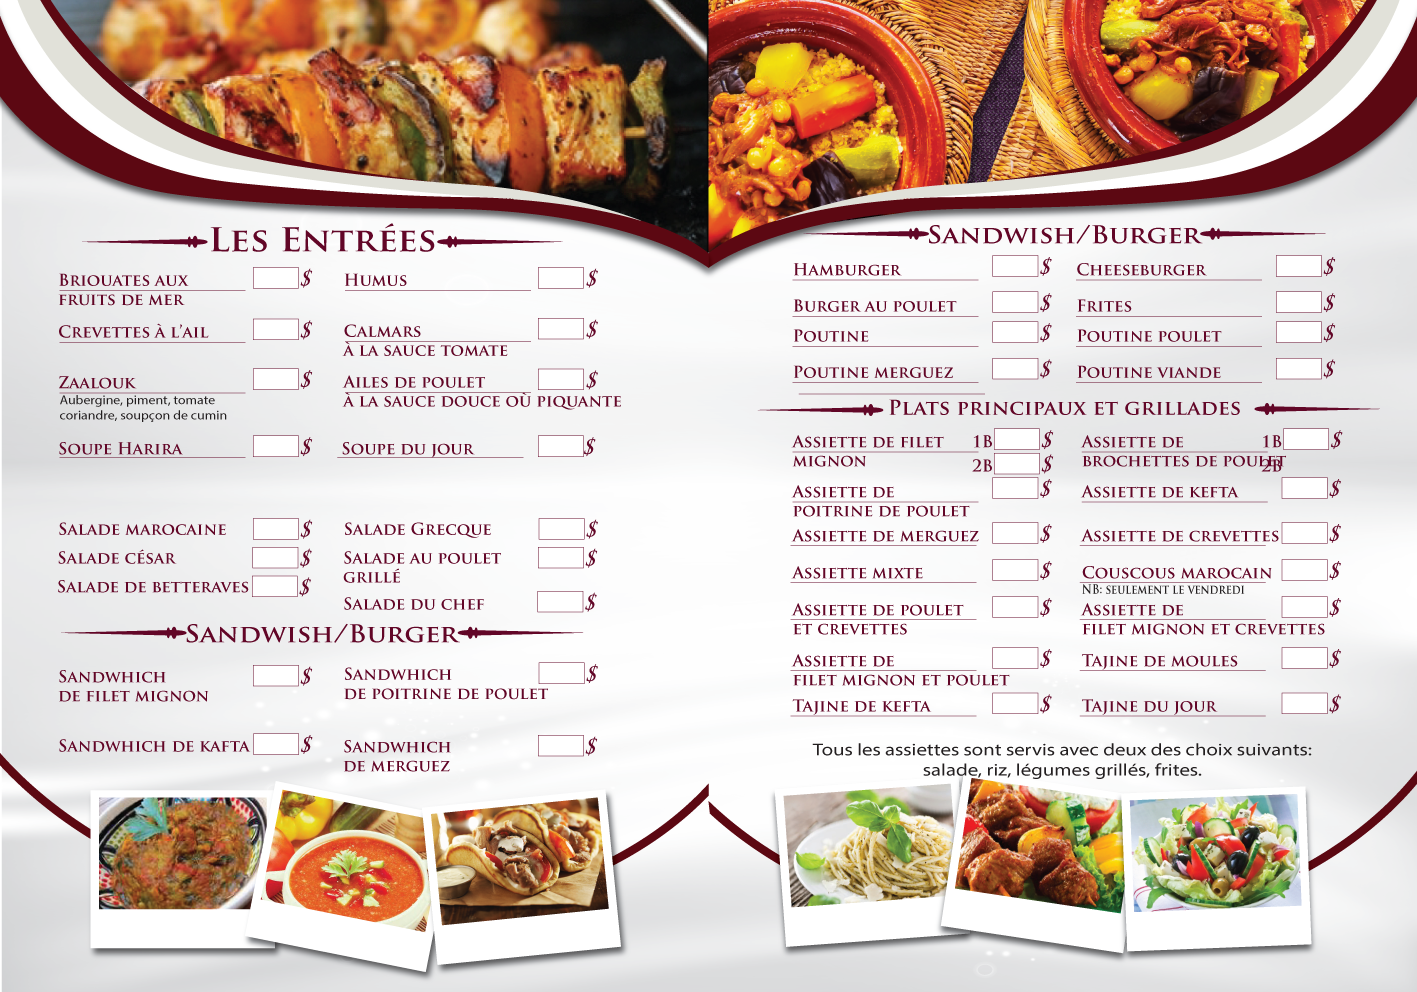 Serious elegant menu design by tedatkinson design 6359891 for Mediterranean menu